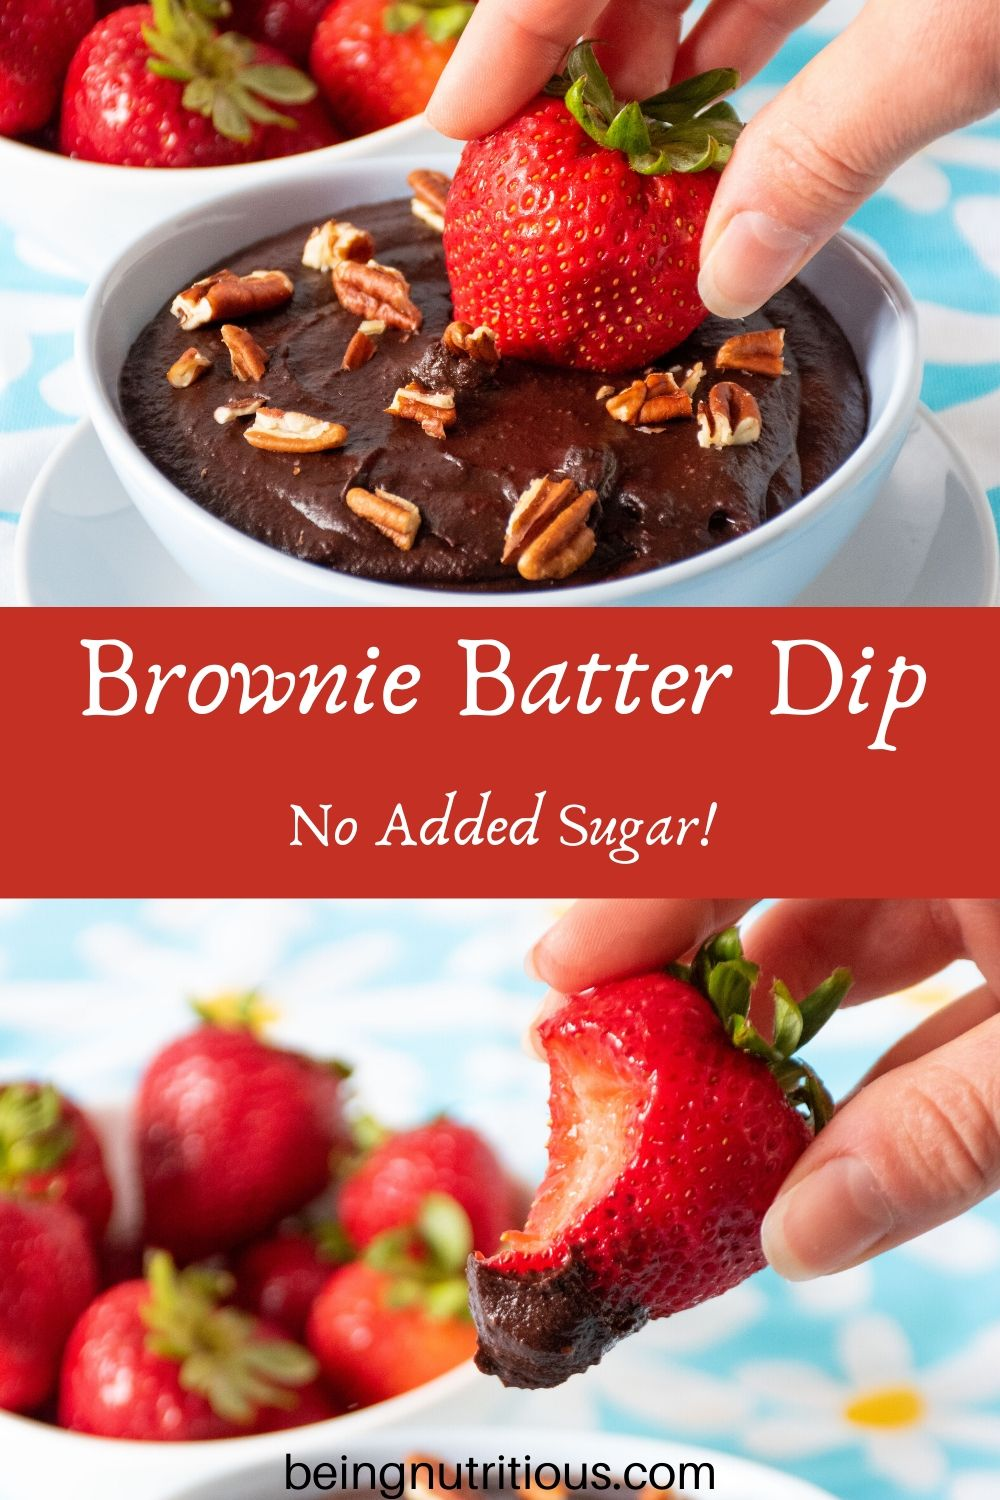 2 stacked images: bowl of brownie batter with a strawberry being dipped in, over a strawberry with dip on it and a bite taken out.